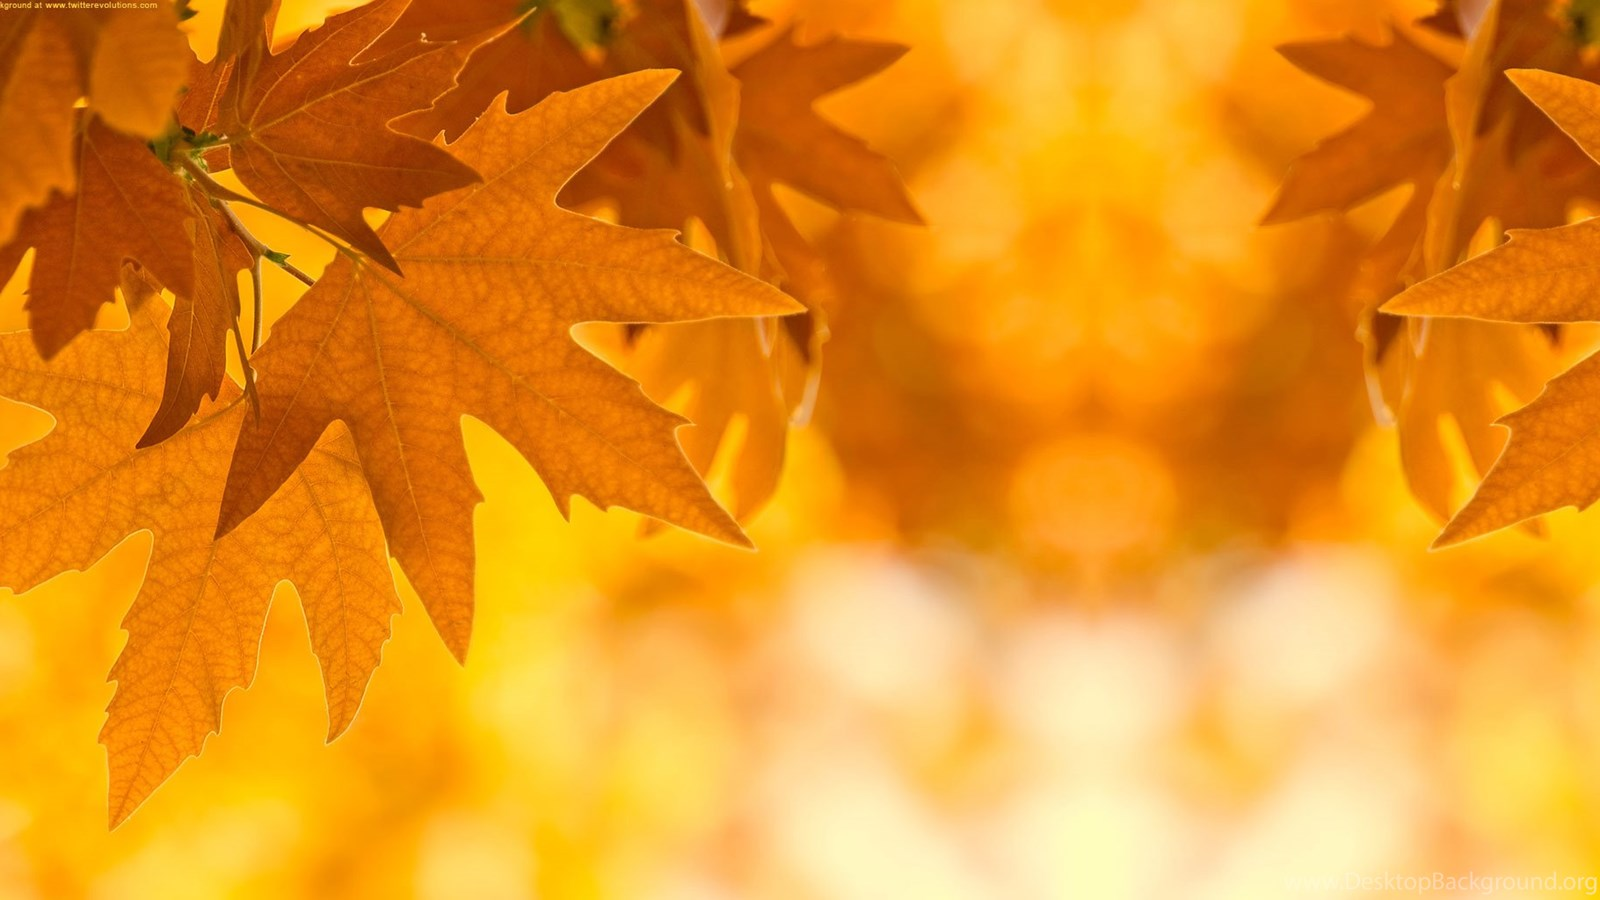 Hd Fall Wallpaper Iphone 5 Autumn Leaves Border Design Ideas Wallpaper Fr Wallpaper